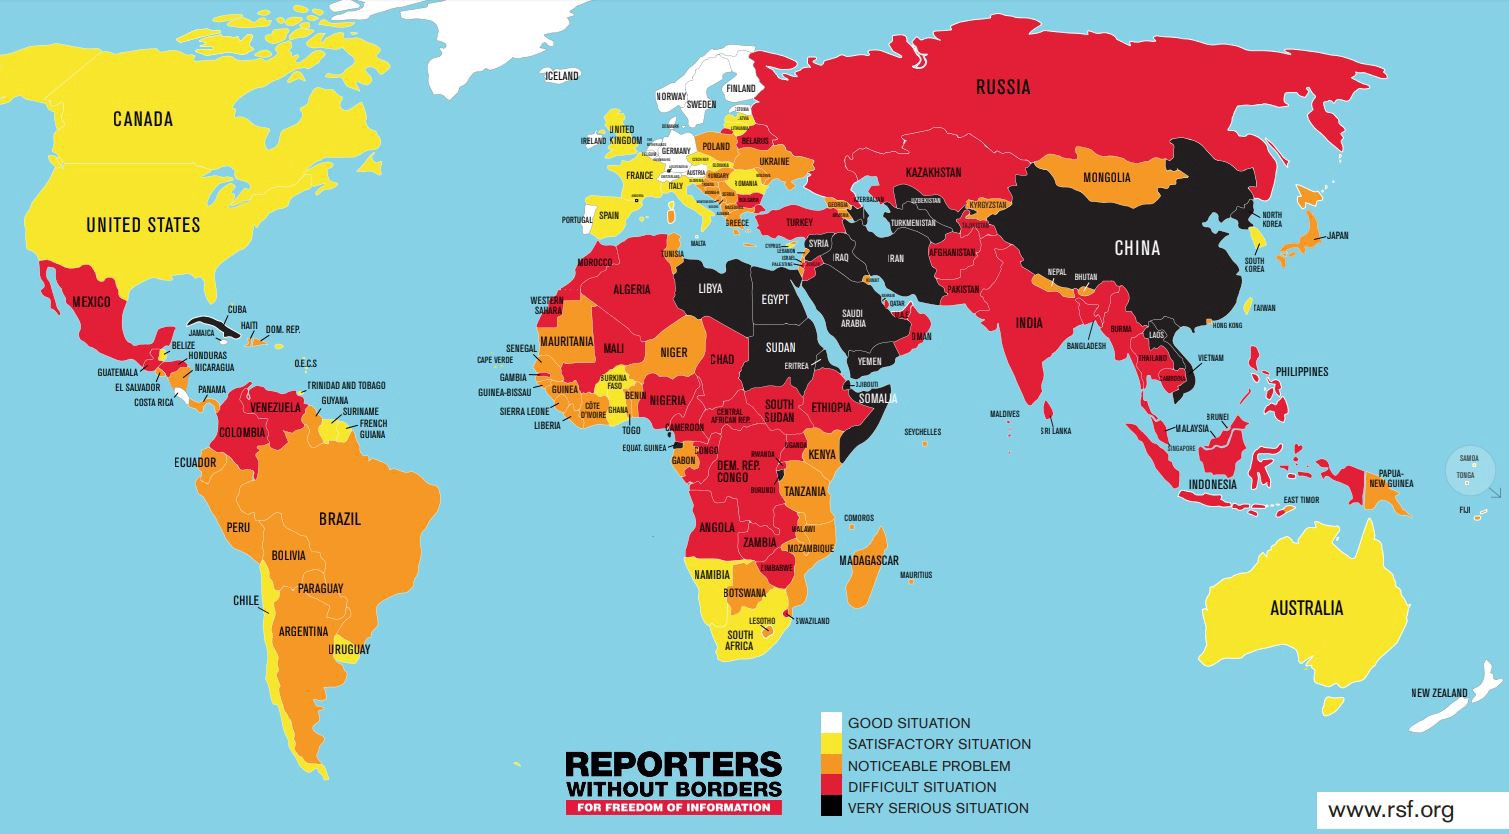 Press freedom is declining worldwide and media mergers are